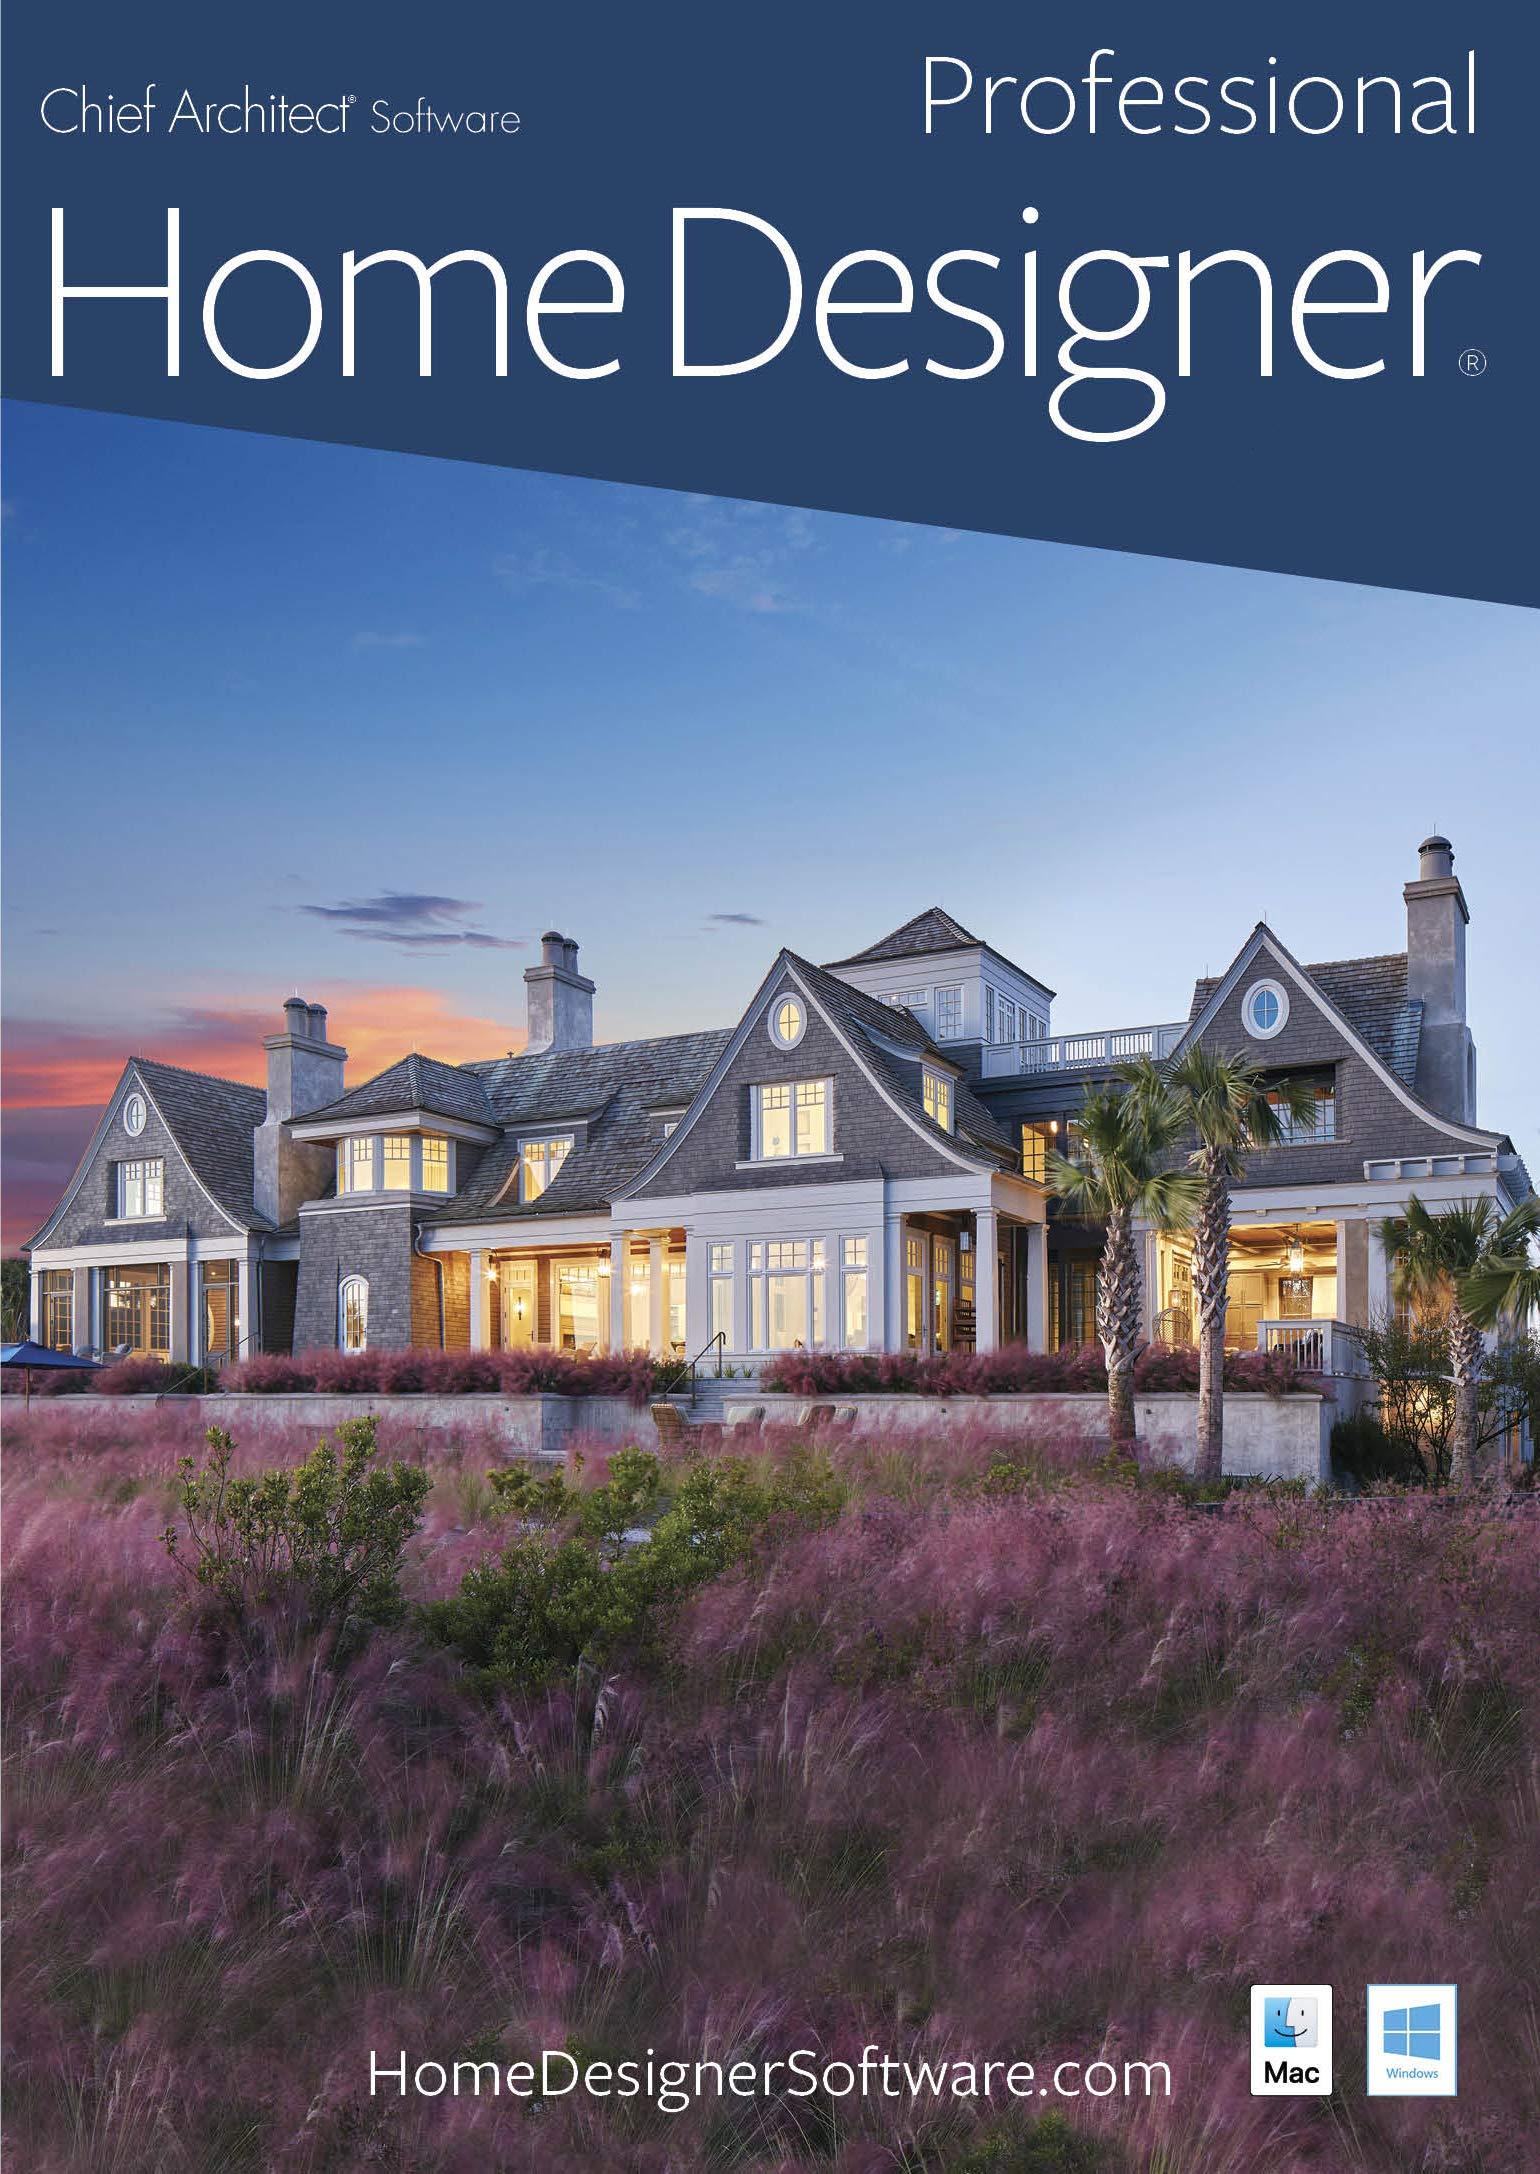 Home Designer Pro - PC Download [PC Download] by Chief Architect